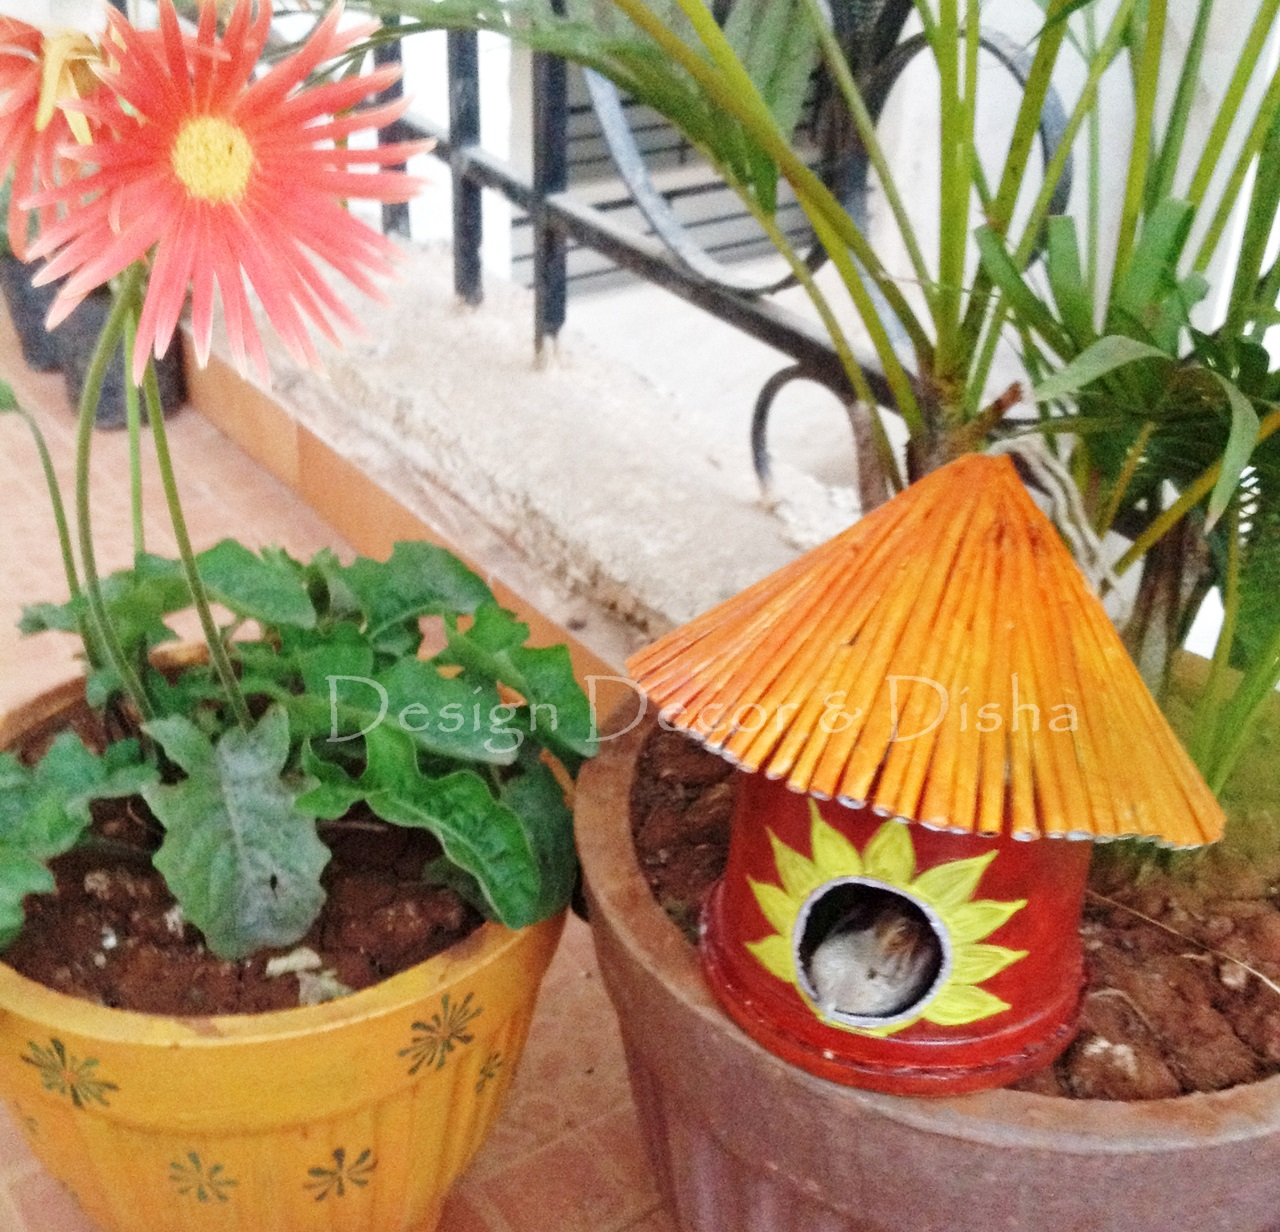 Design decor disha diy bird house for Balcony decoration ideas india